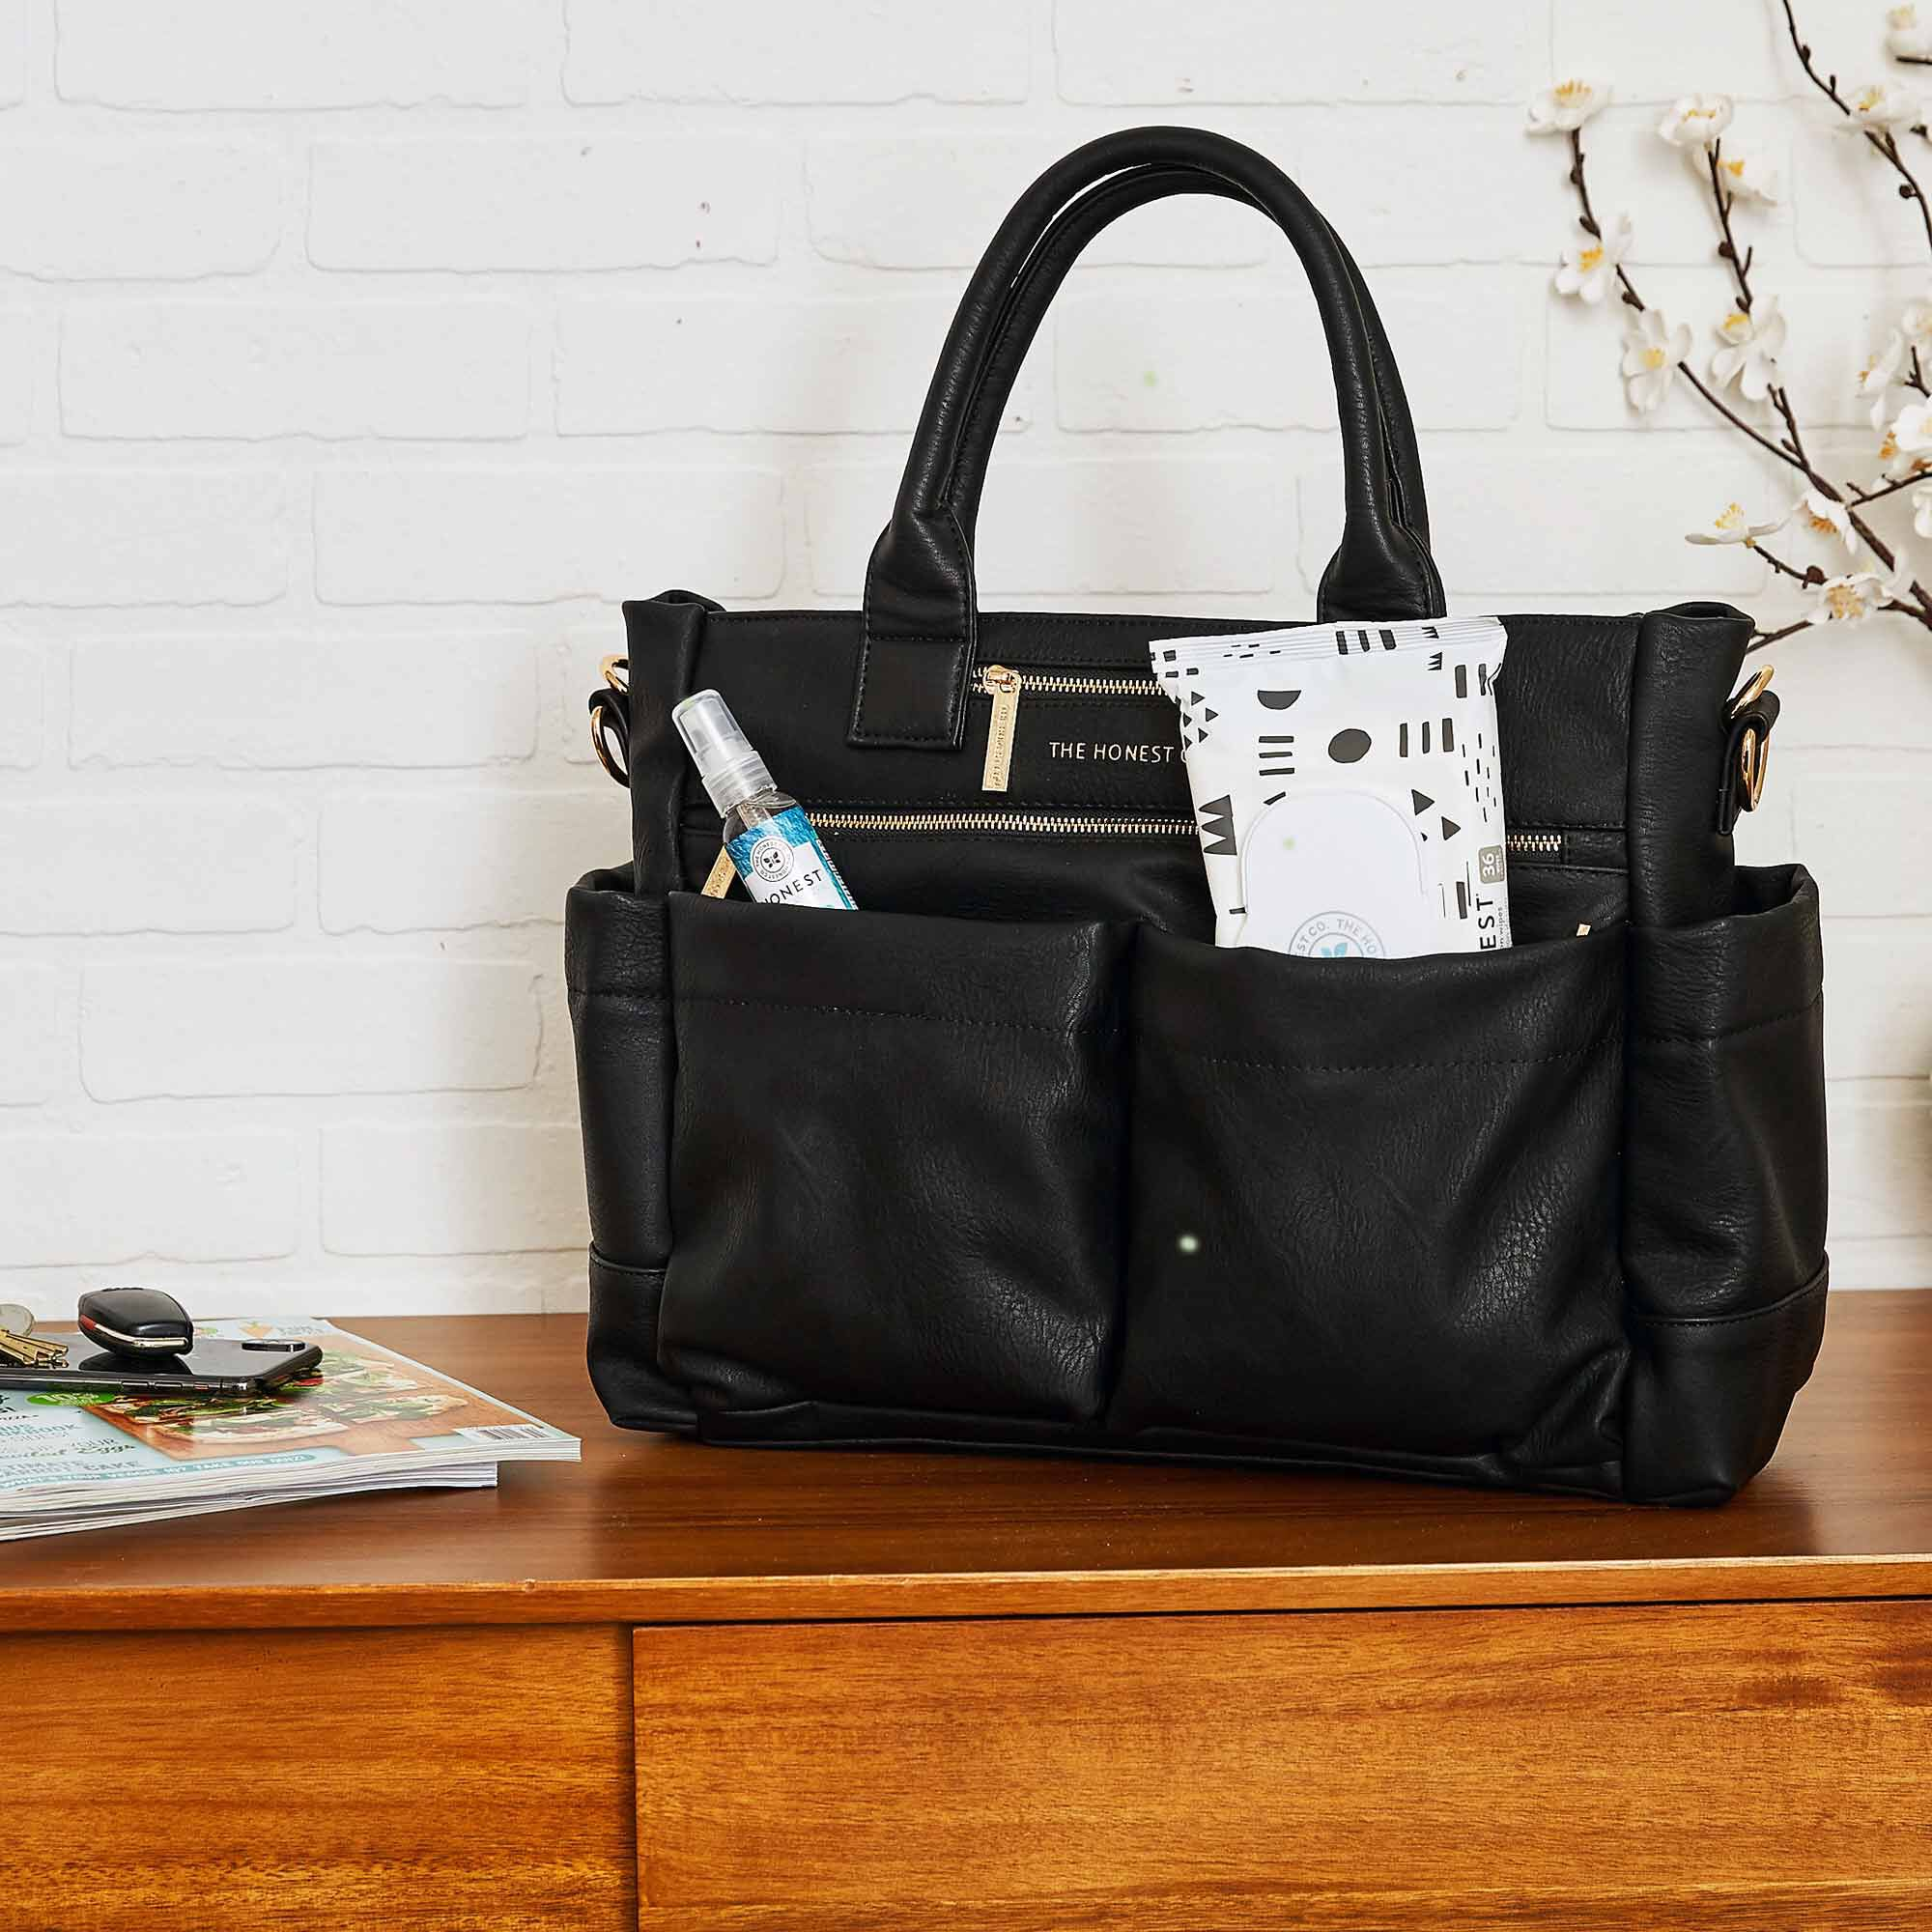 Everything tote with wipes and hand sanitizer in a home setting